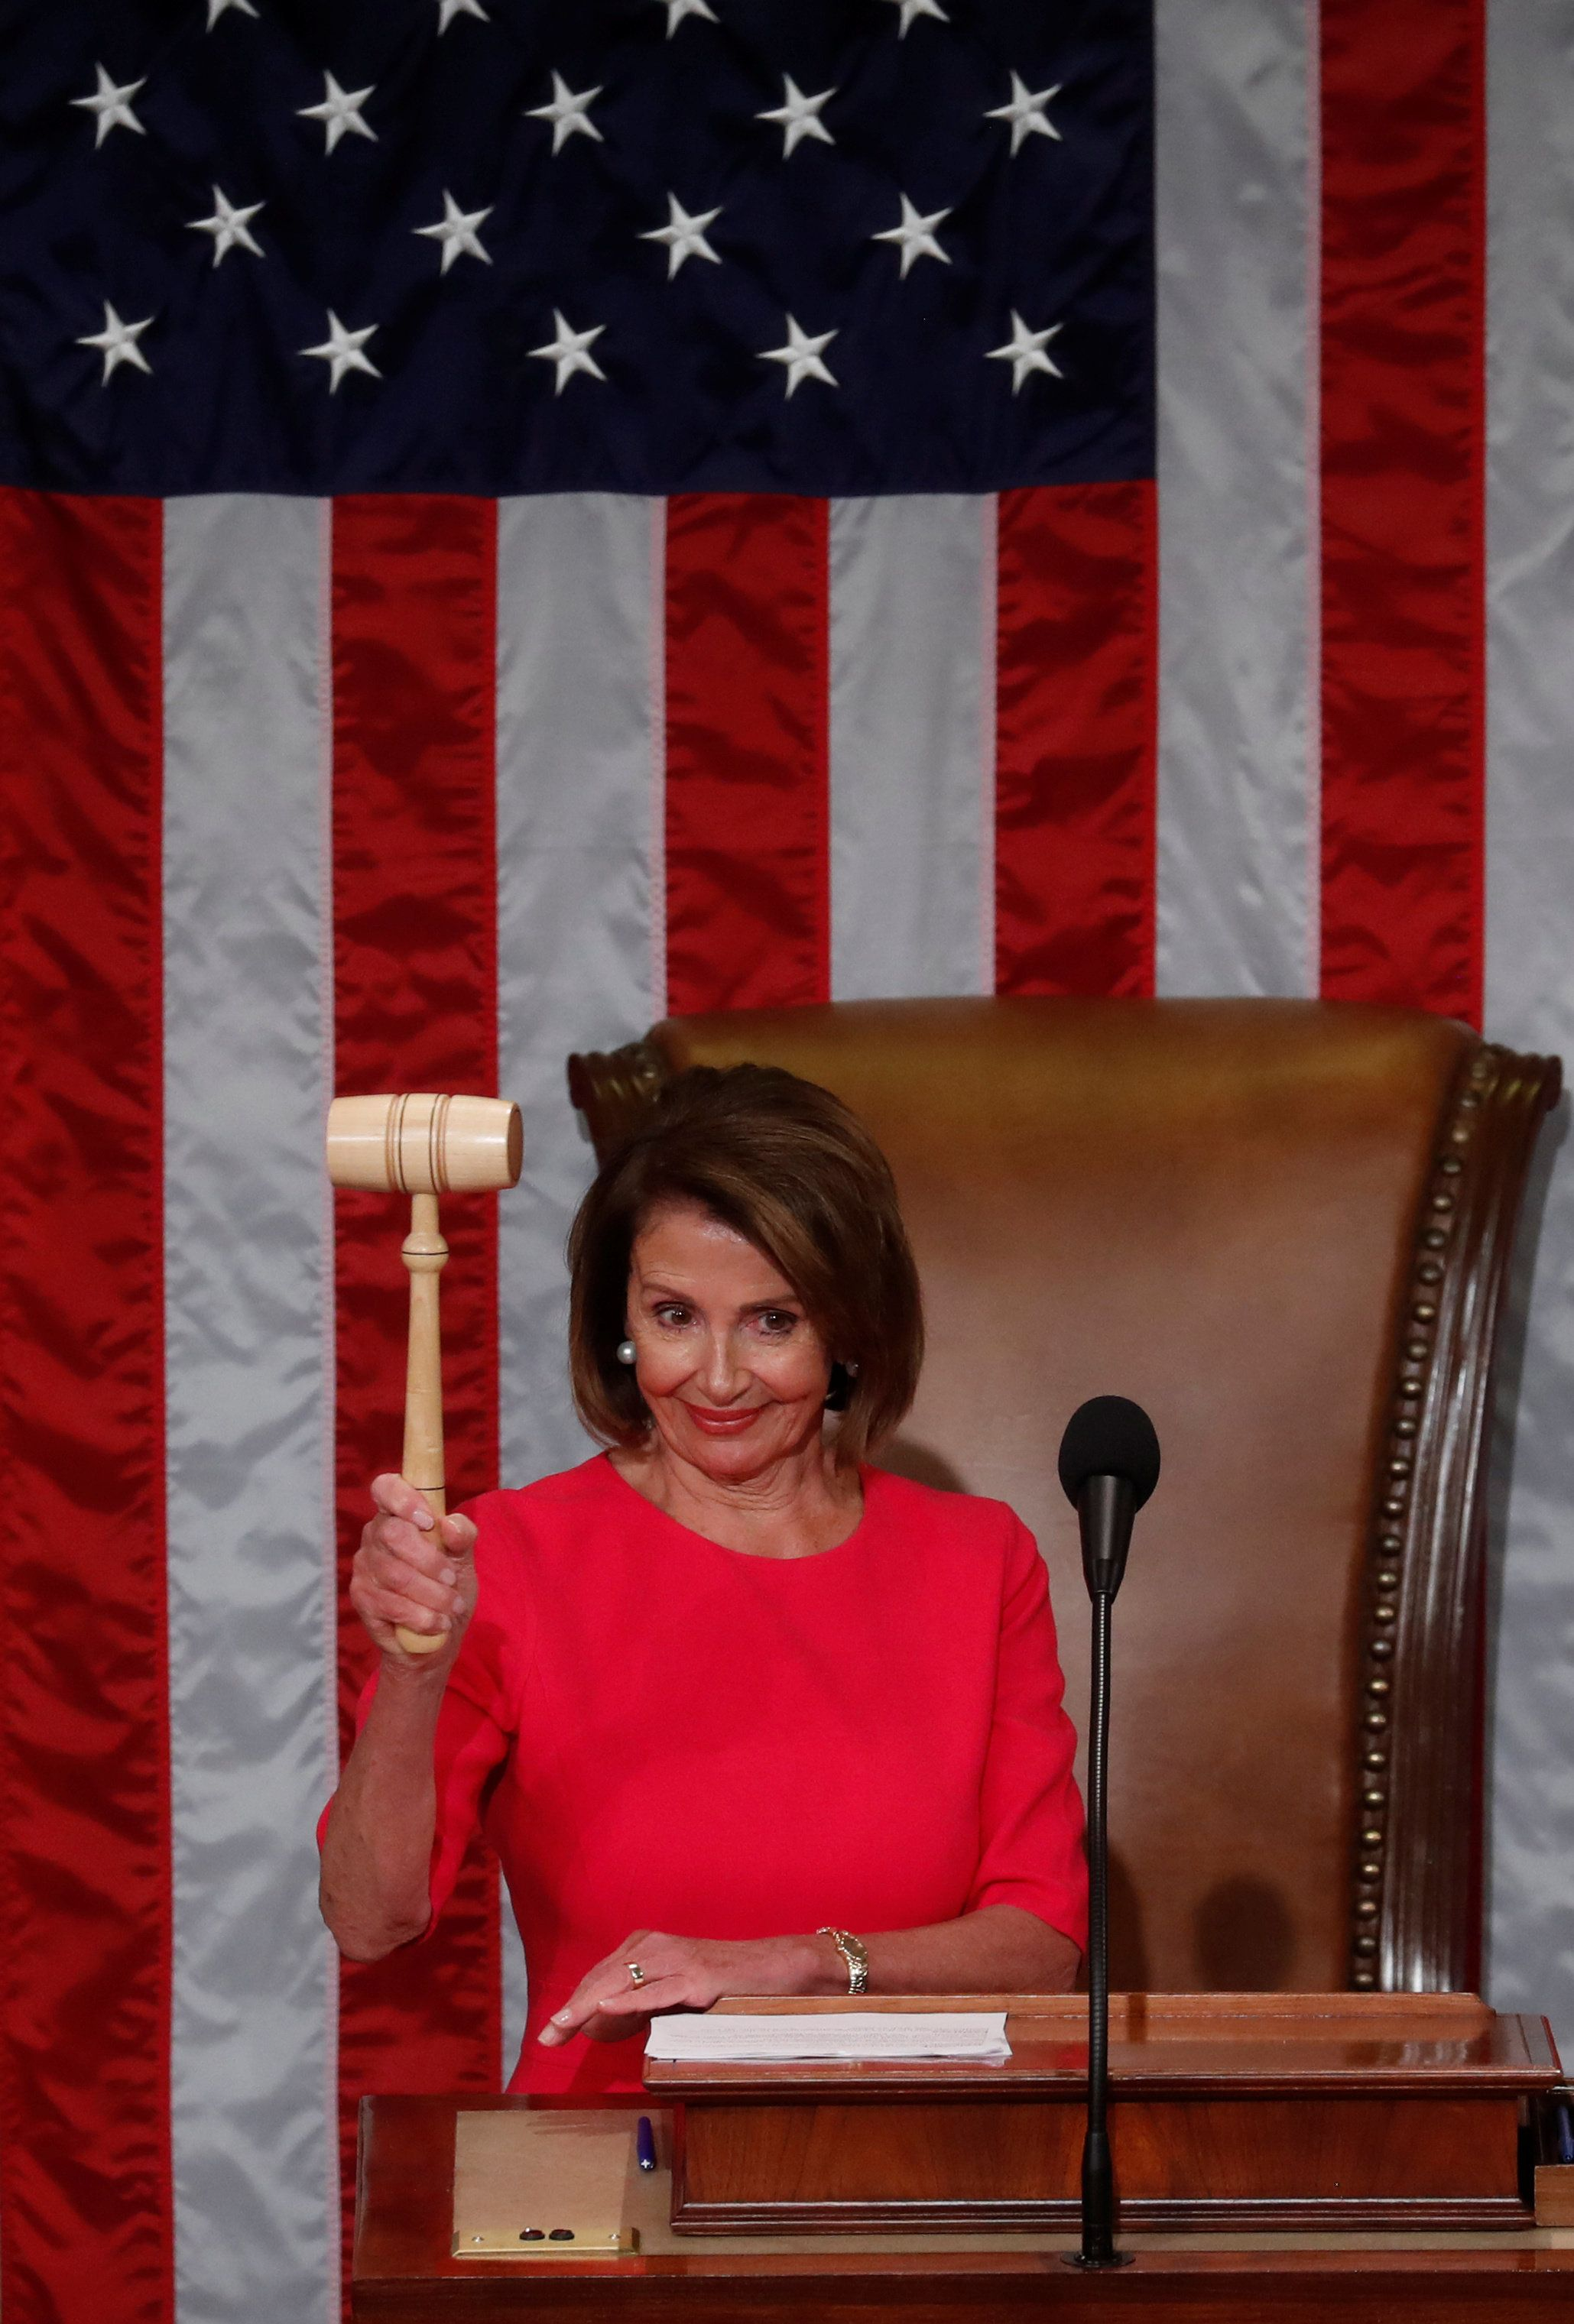 House Speaker-designate Nancy Pelosi (D-CA) holds the speaker's gavel after being elected speaker as the U.S. House of Representatives meets for the start of the 116th Congress inside the House Chamber on Capitol Hill in Washington, U.S., January 3, 2019 REUTERS/Leah Millis??